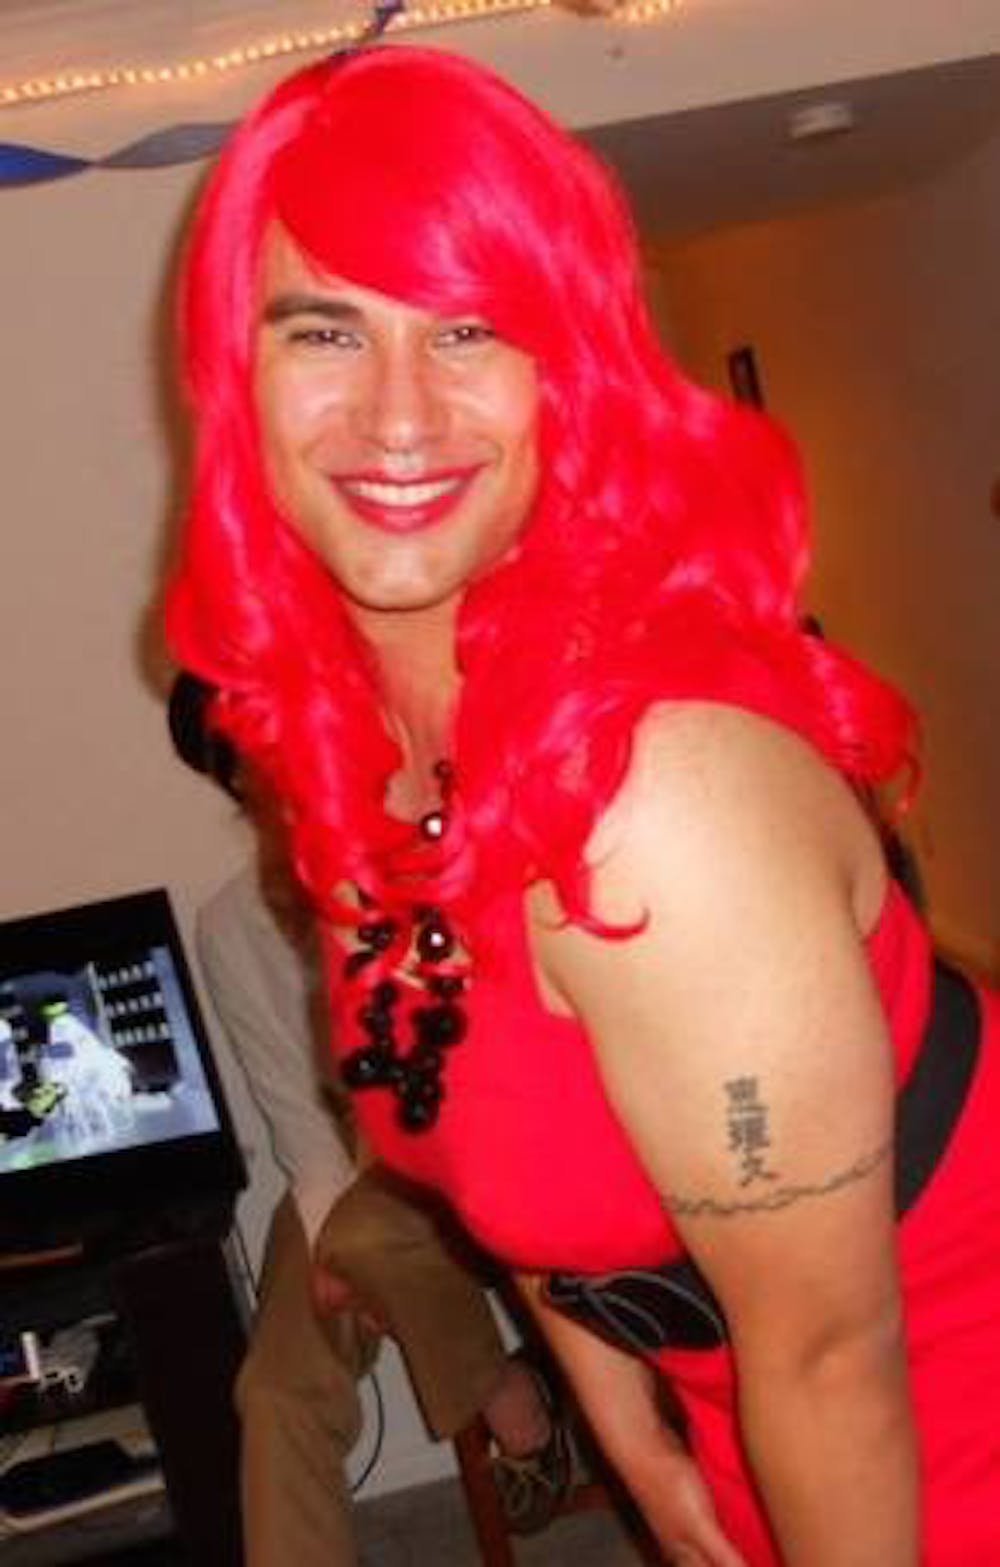 <p>Denise &mdash; Grollman's drag alter ego | Courtesy of&nbsp;Eric Anthony Grollman</p>